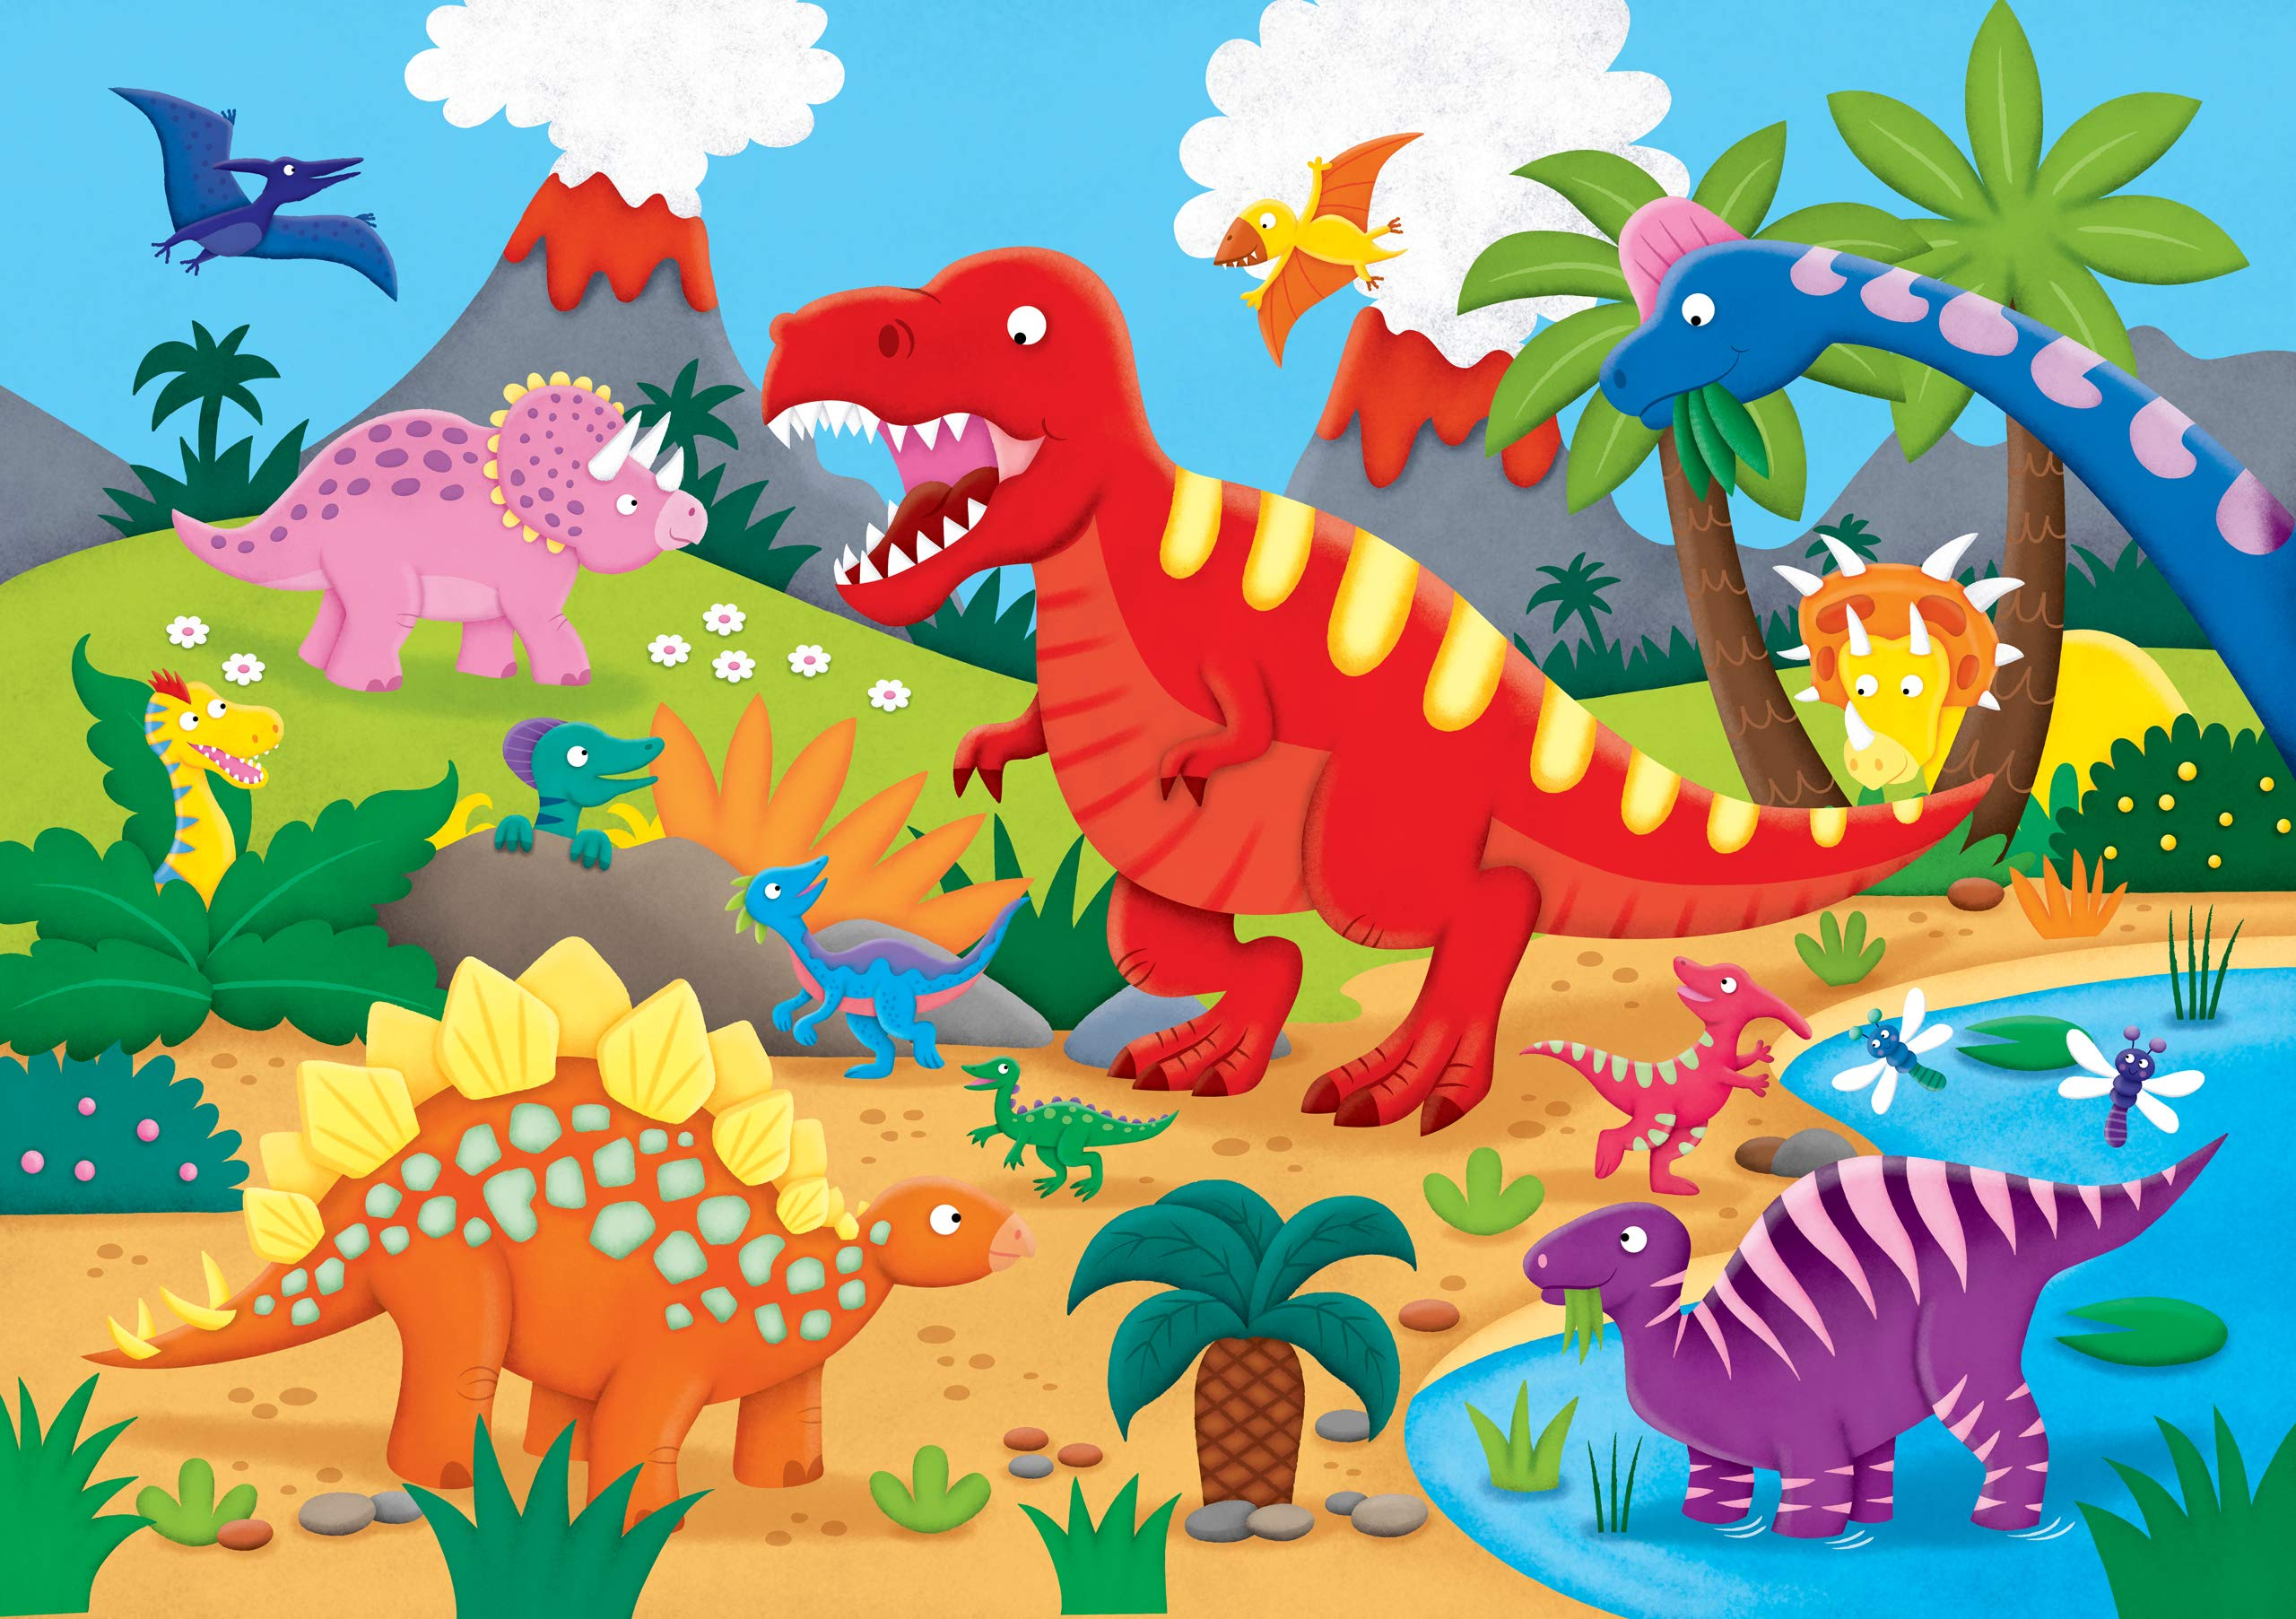 Children/'s Dinosaur World Jurassic Period Giant Floor Puzzle 96pcs ages 6 and up